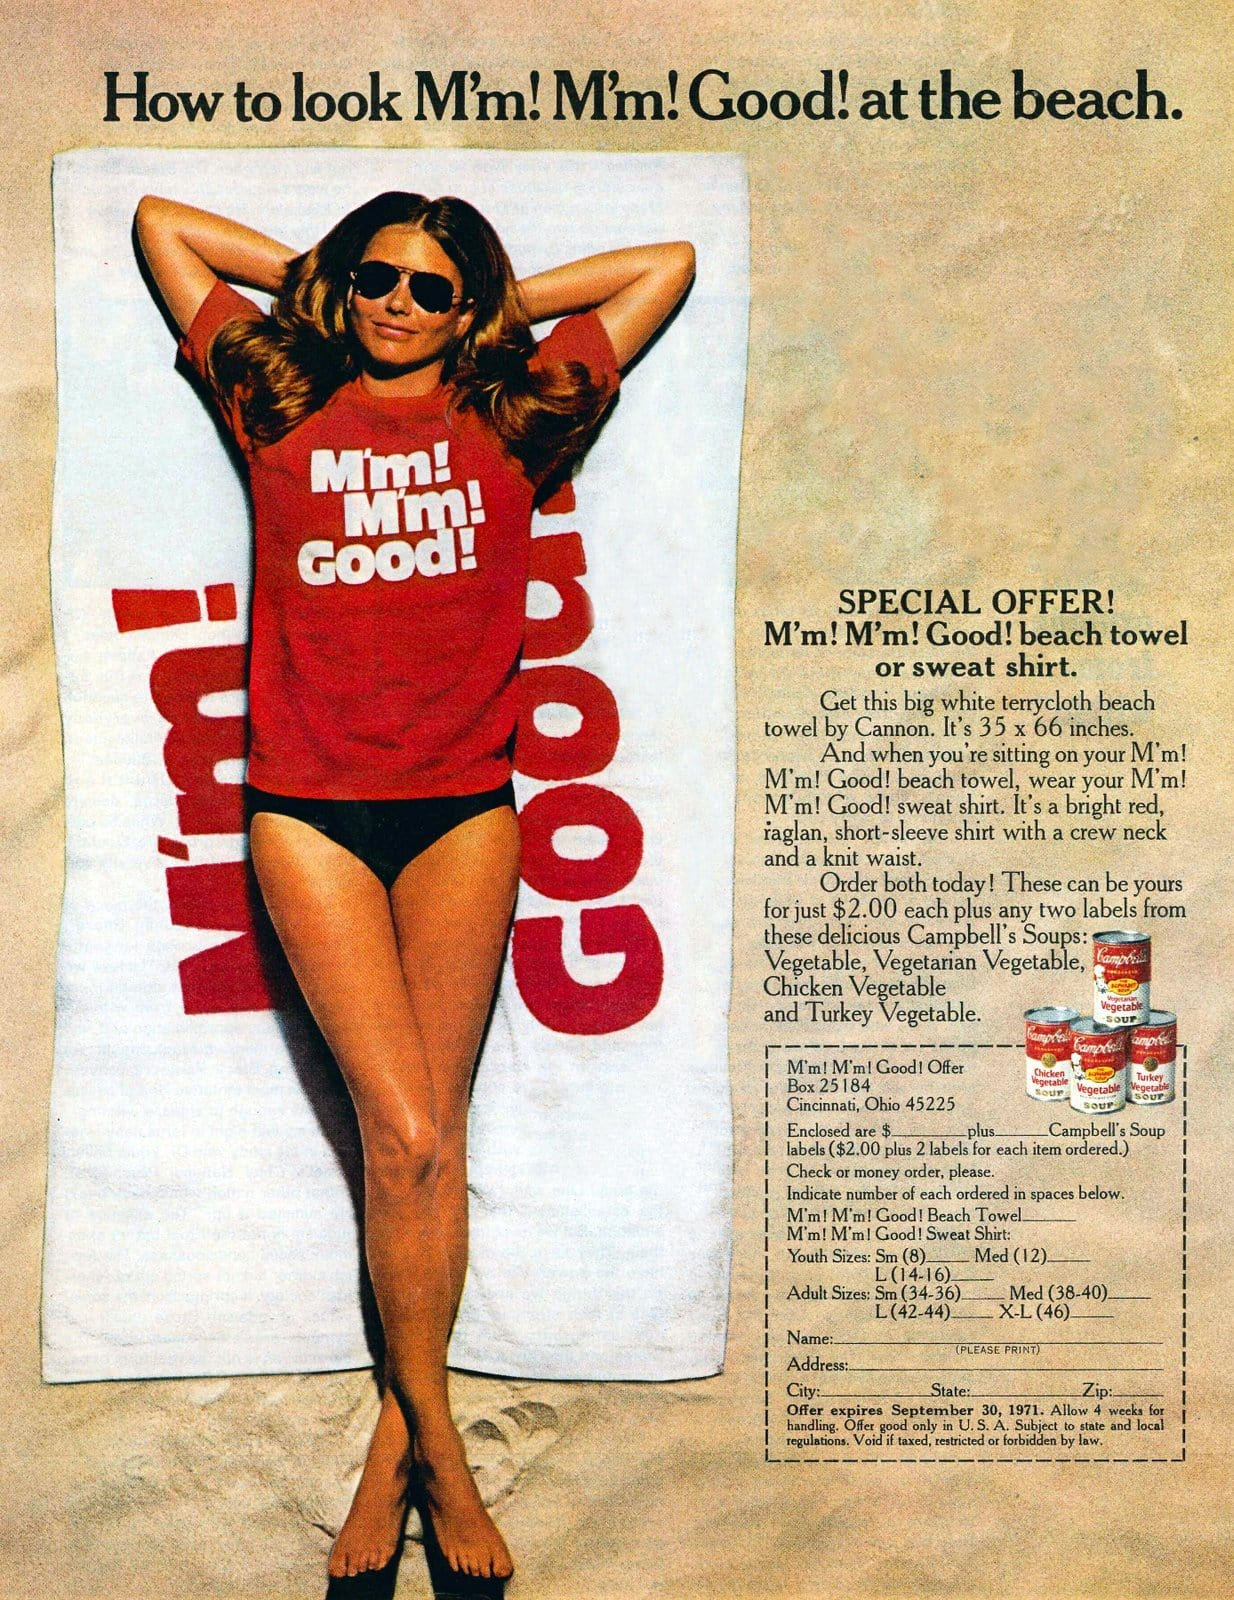 Vintage Campbell's Soup beach towel or T-shirt offer (1971)